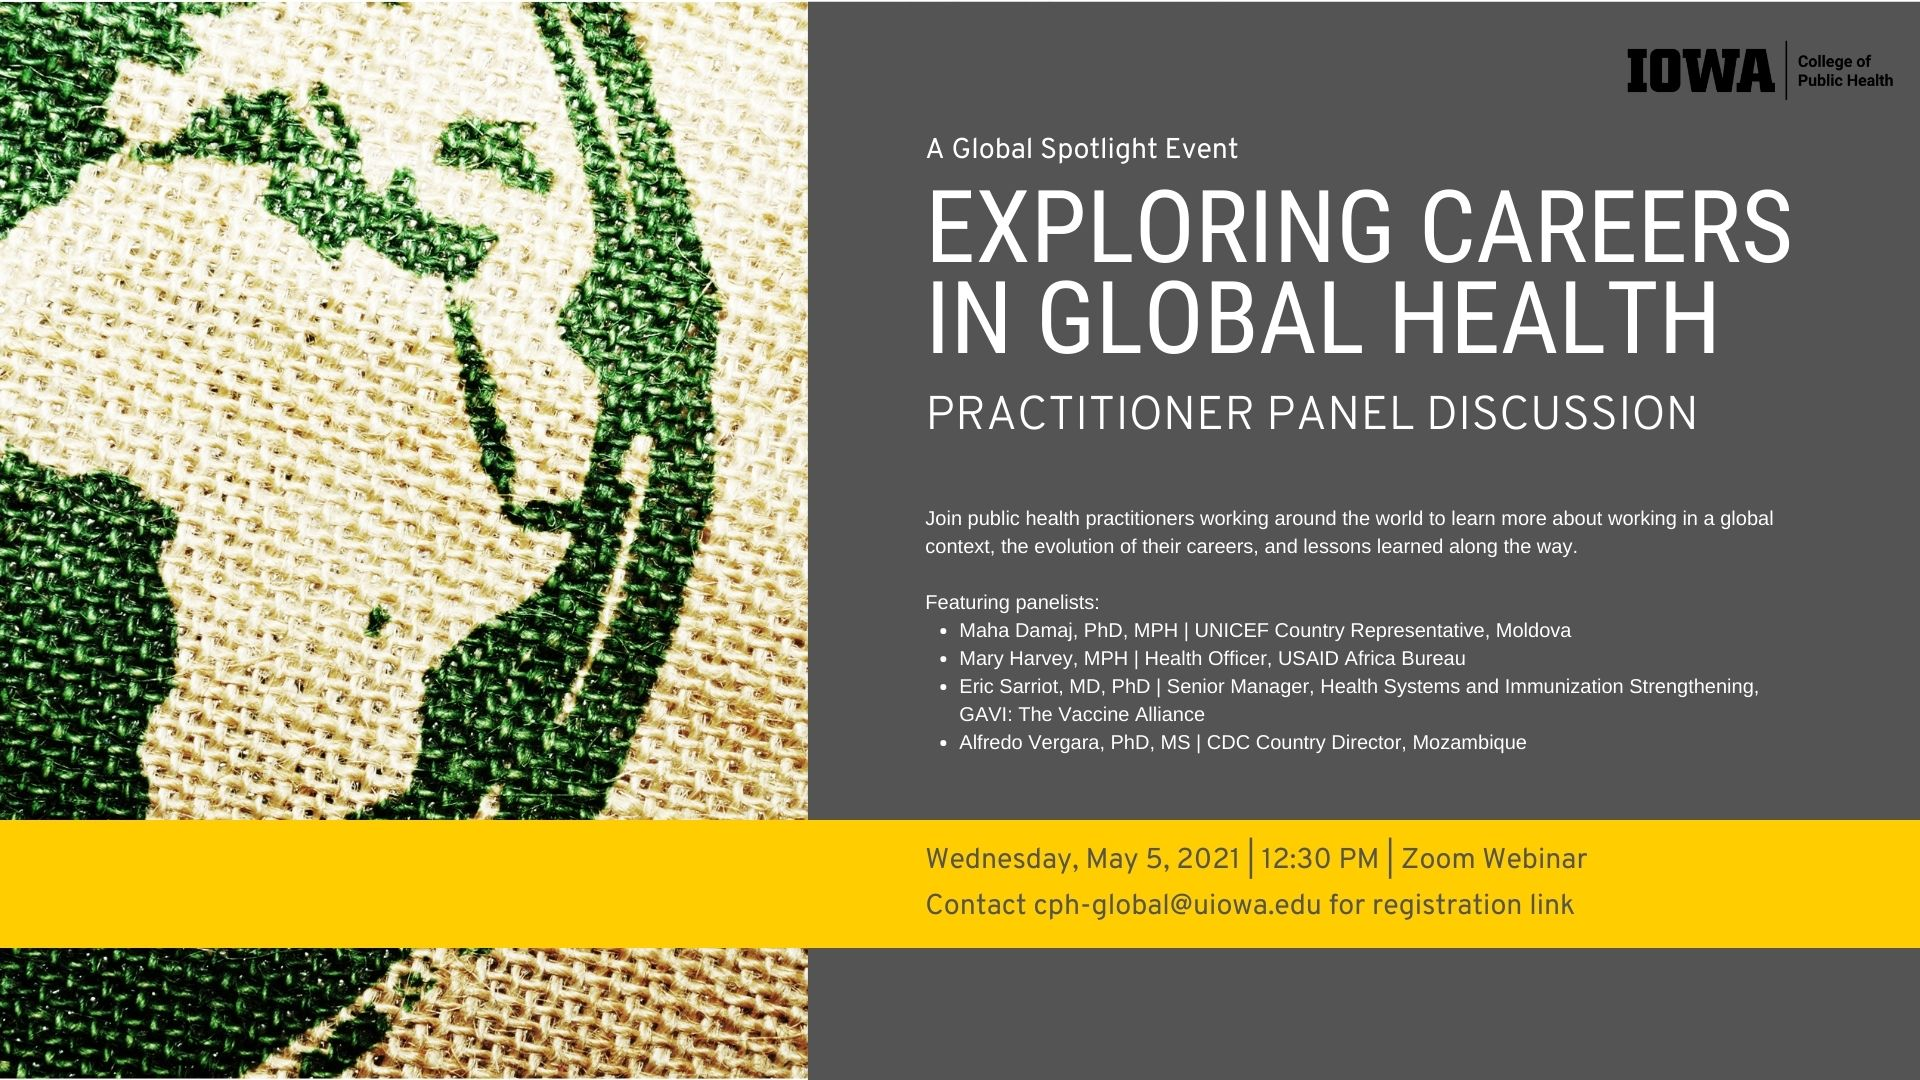 Exploring Careers in Global Health: A Panel Discussion promotional image